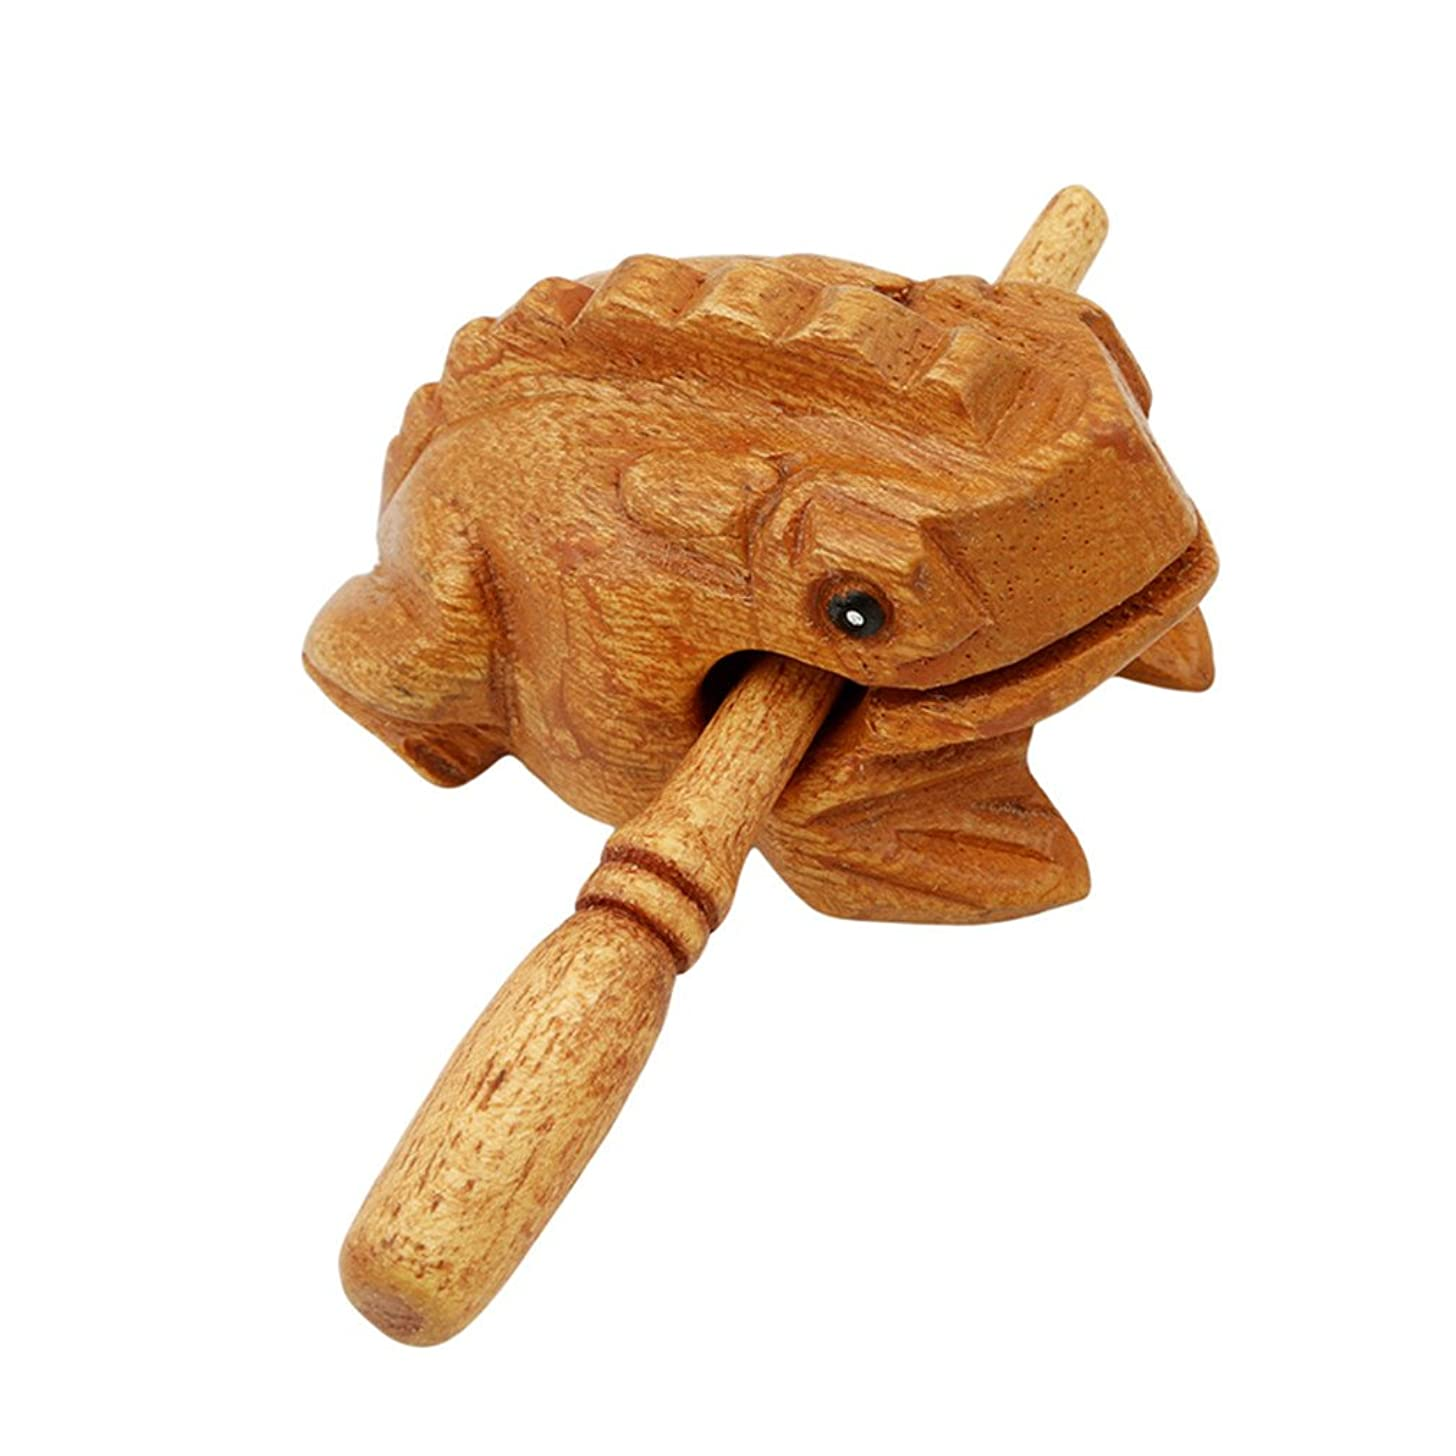 Iumer Wood Frog Guiro Musical Instrument Tone Block Animal Toy